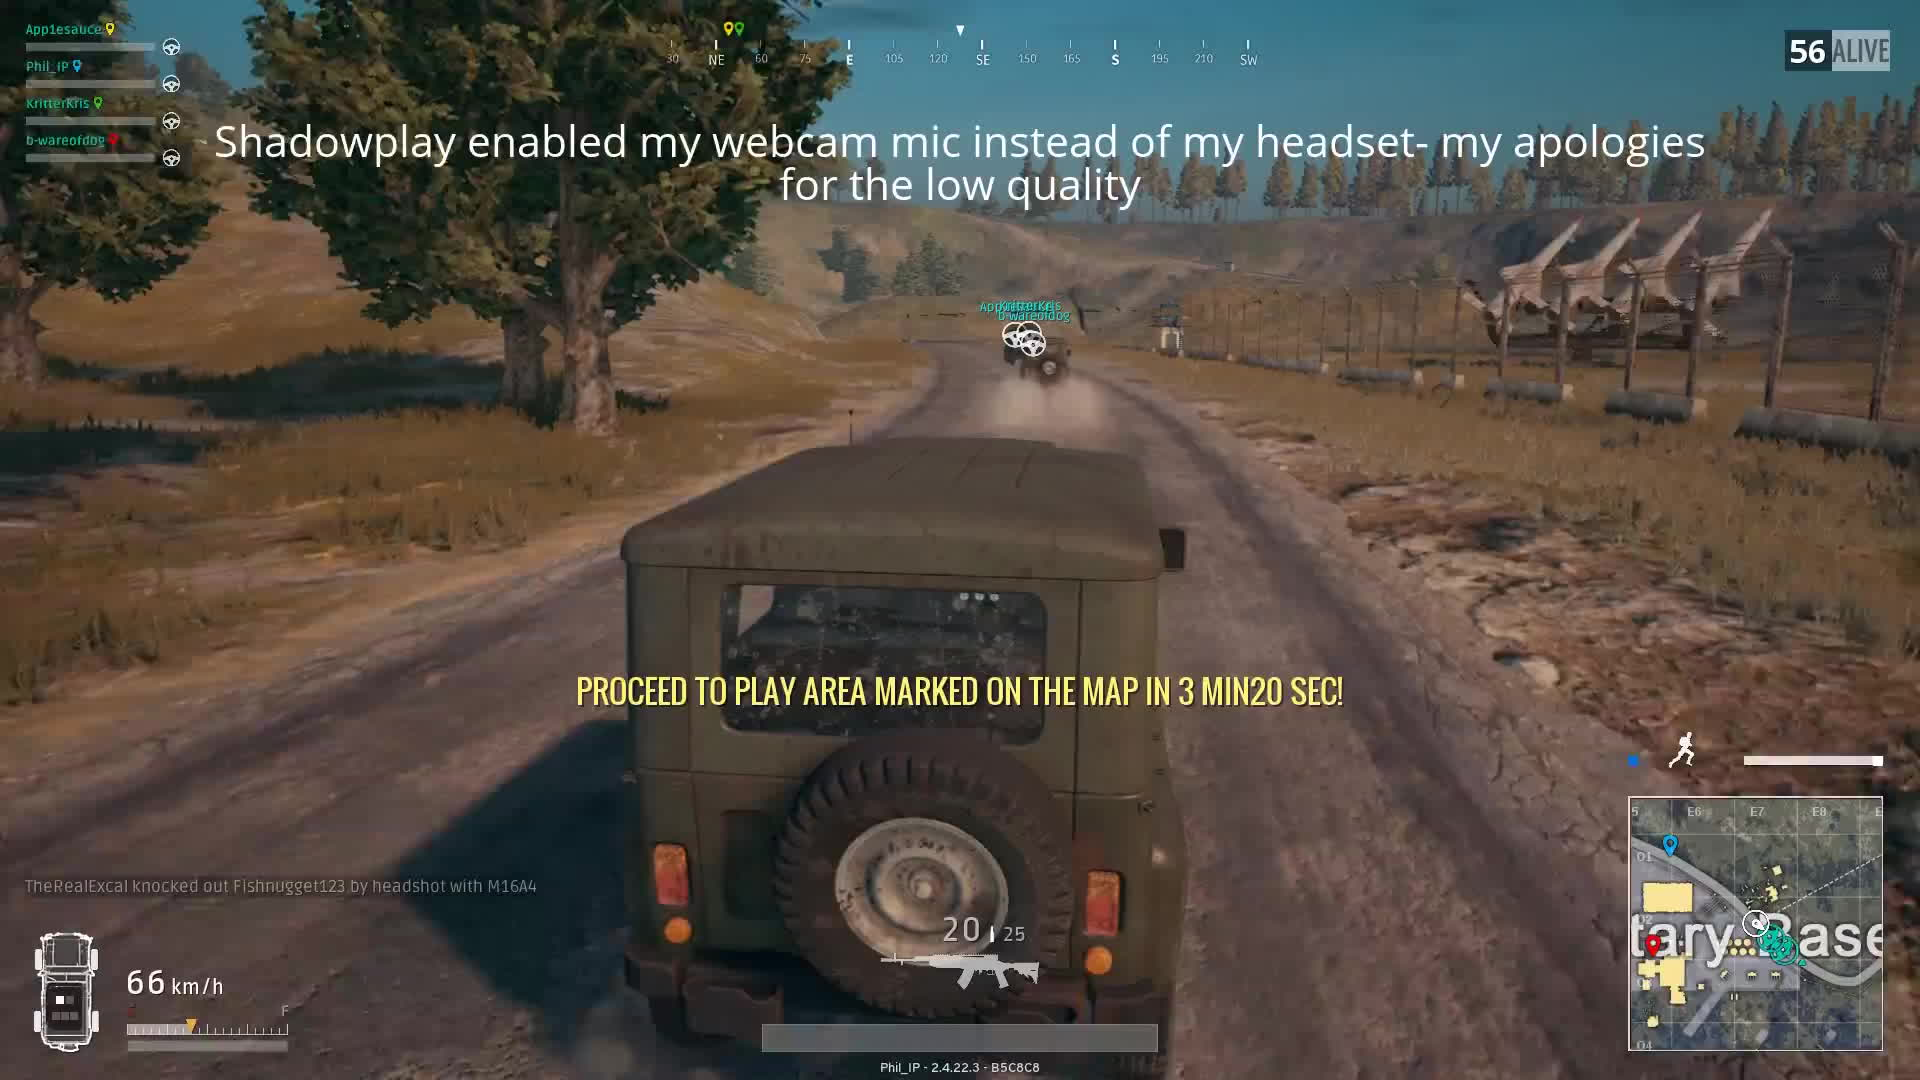 convoy, explosion, pubg, You're Never Safe in PUBG GIFs